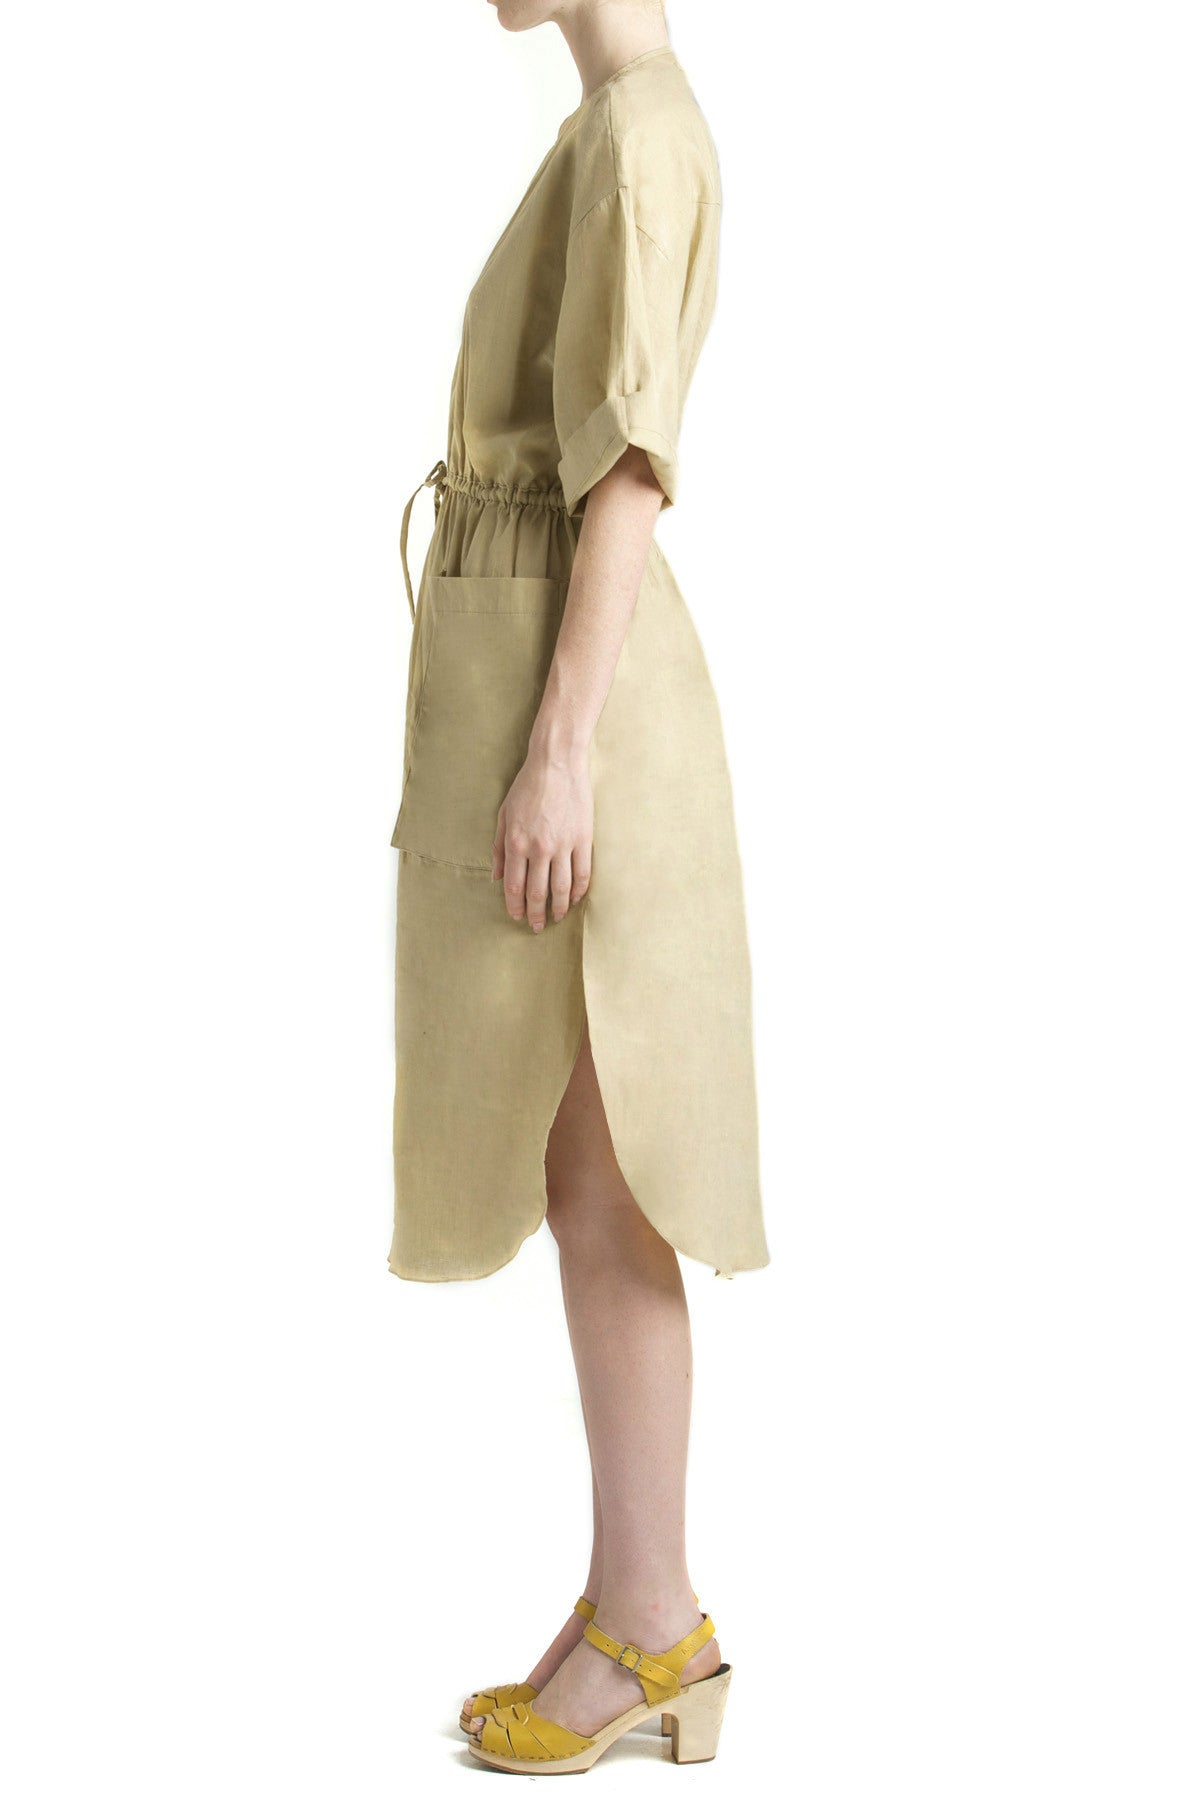 shakuhachi - SCOOP HEM DOUBLE POCKET DRESS KHAKI - 3